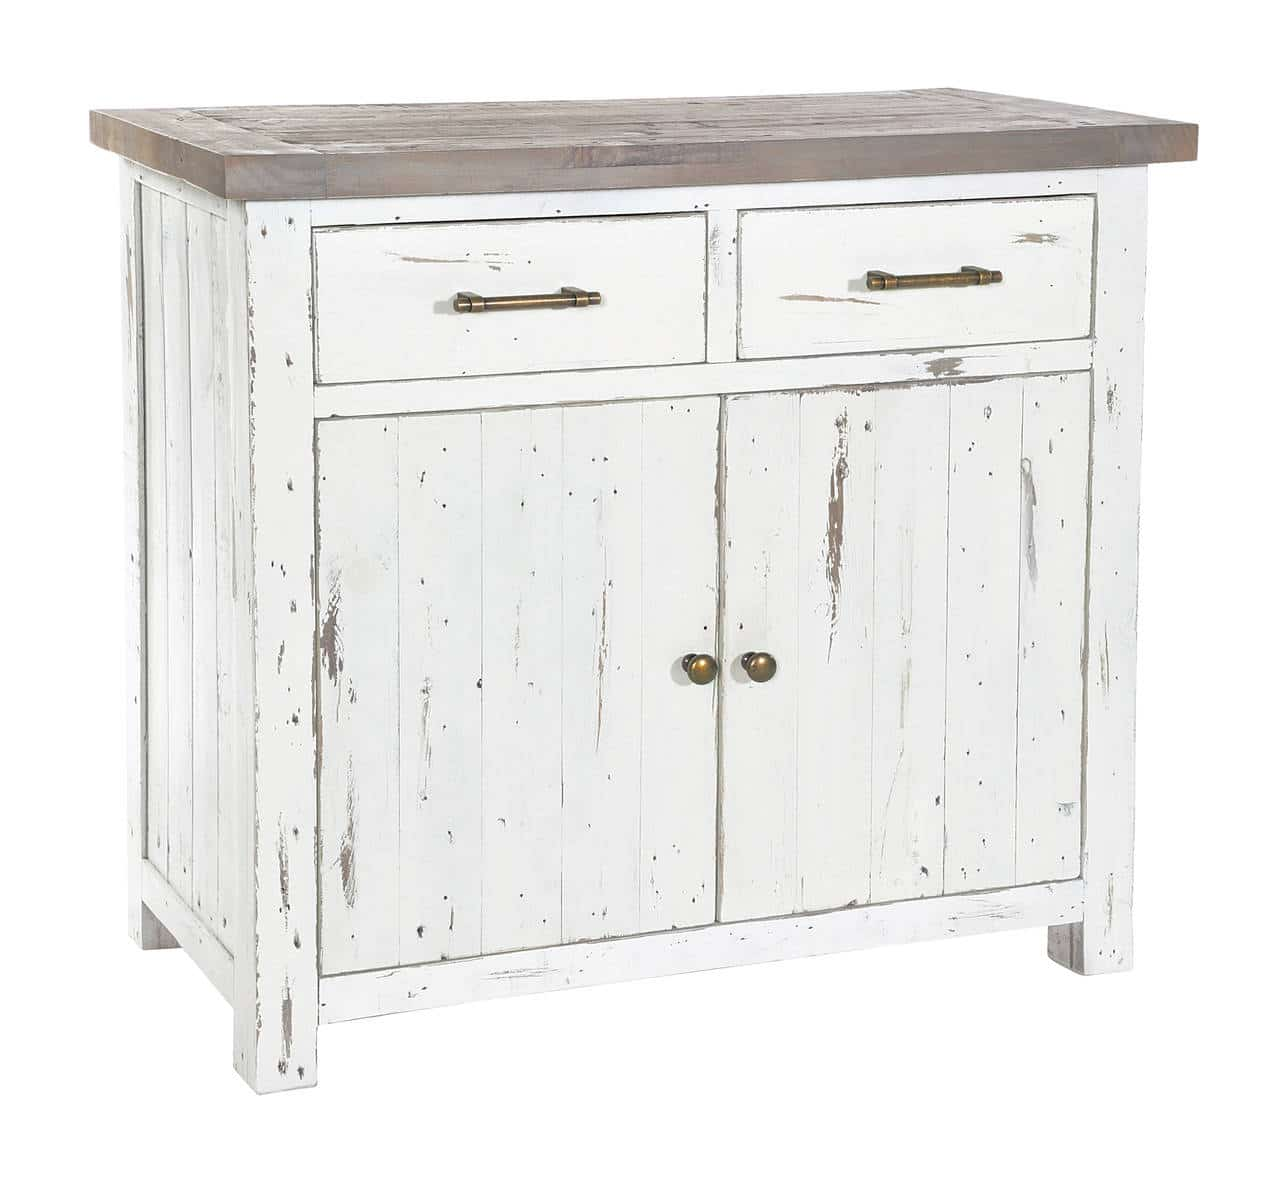 Purbeck Shabby Chic Small Sideboard Newco Interiors Bespoke